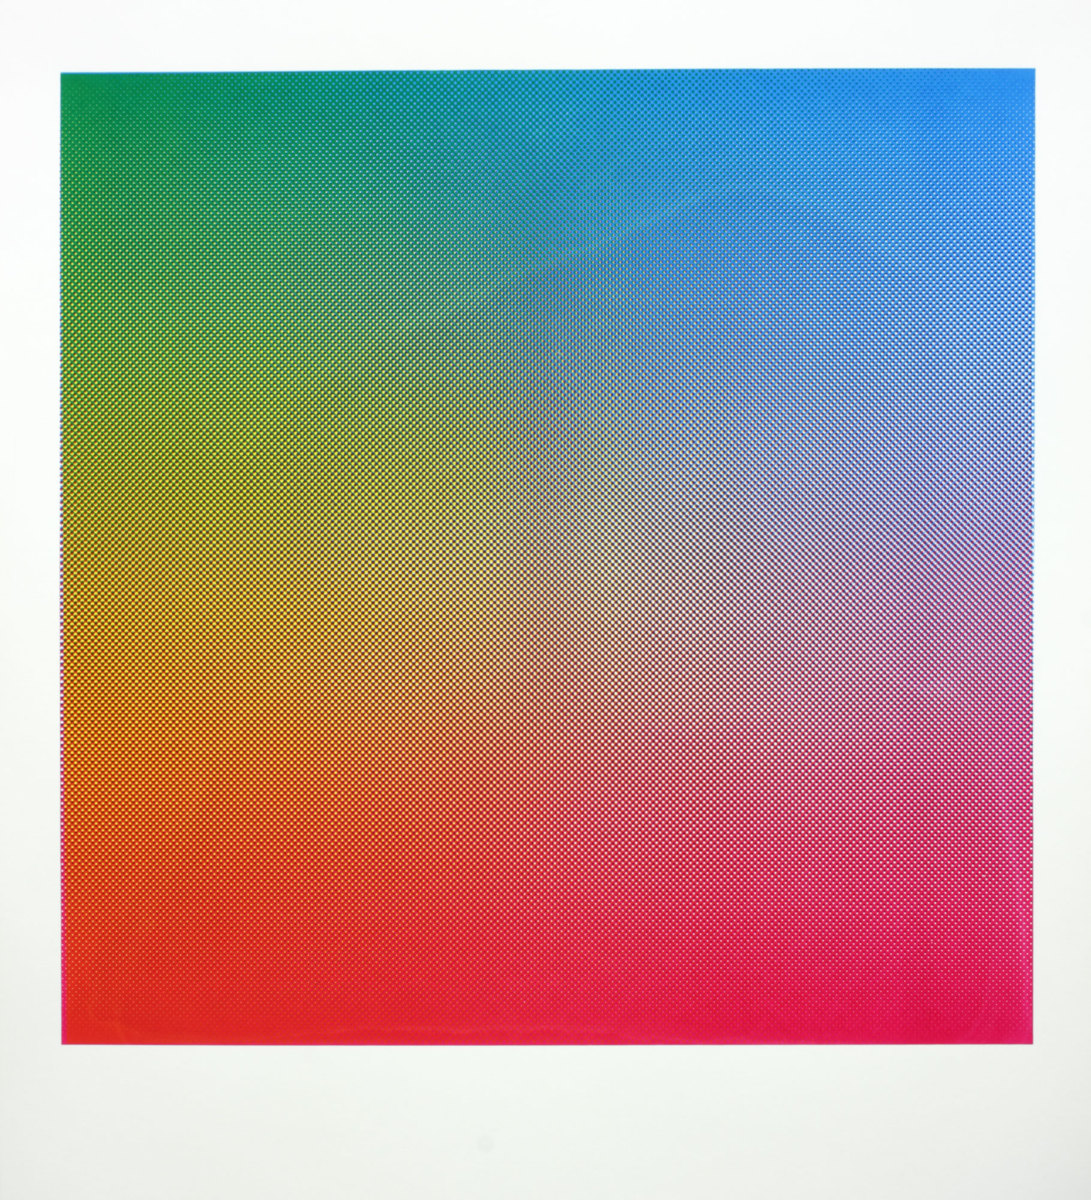 rogier-arents-new-window-gradient-1200